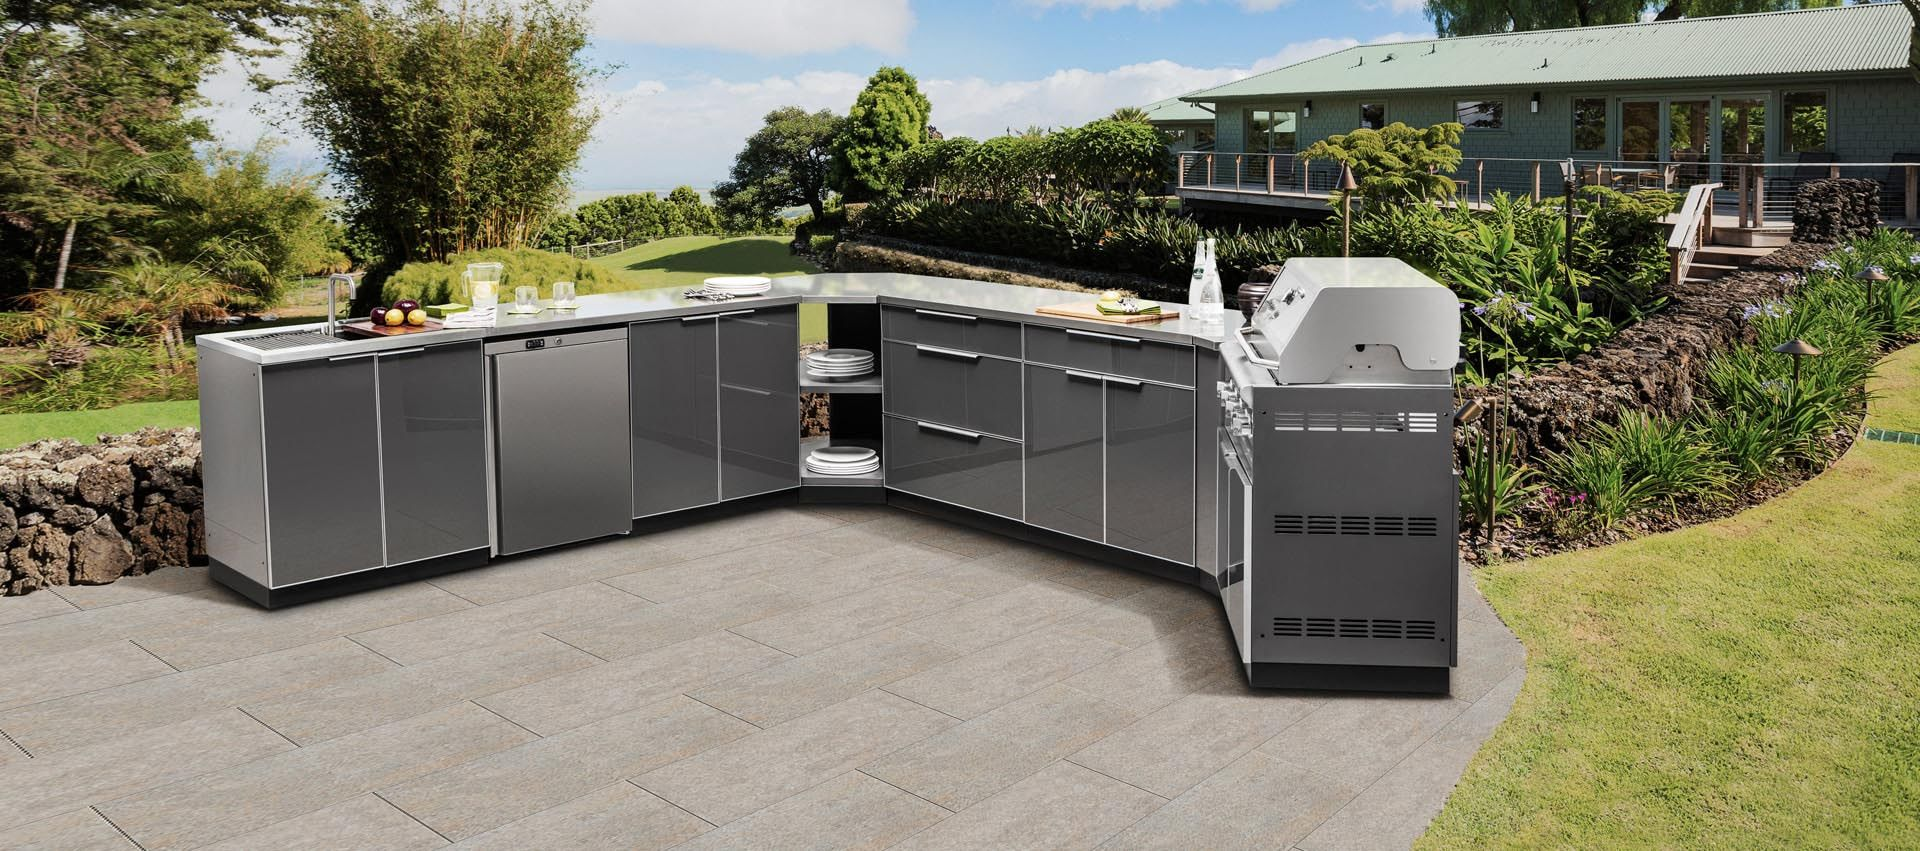 20 Stainless Steel Outdoor Kitchen Cabinets - Interior Paint Color ...